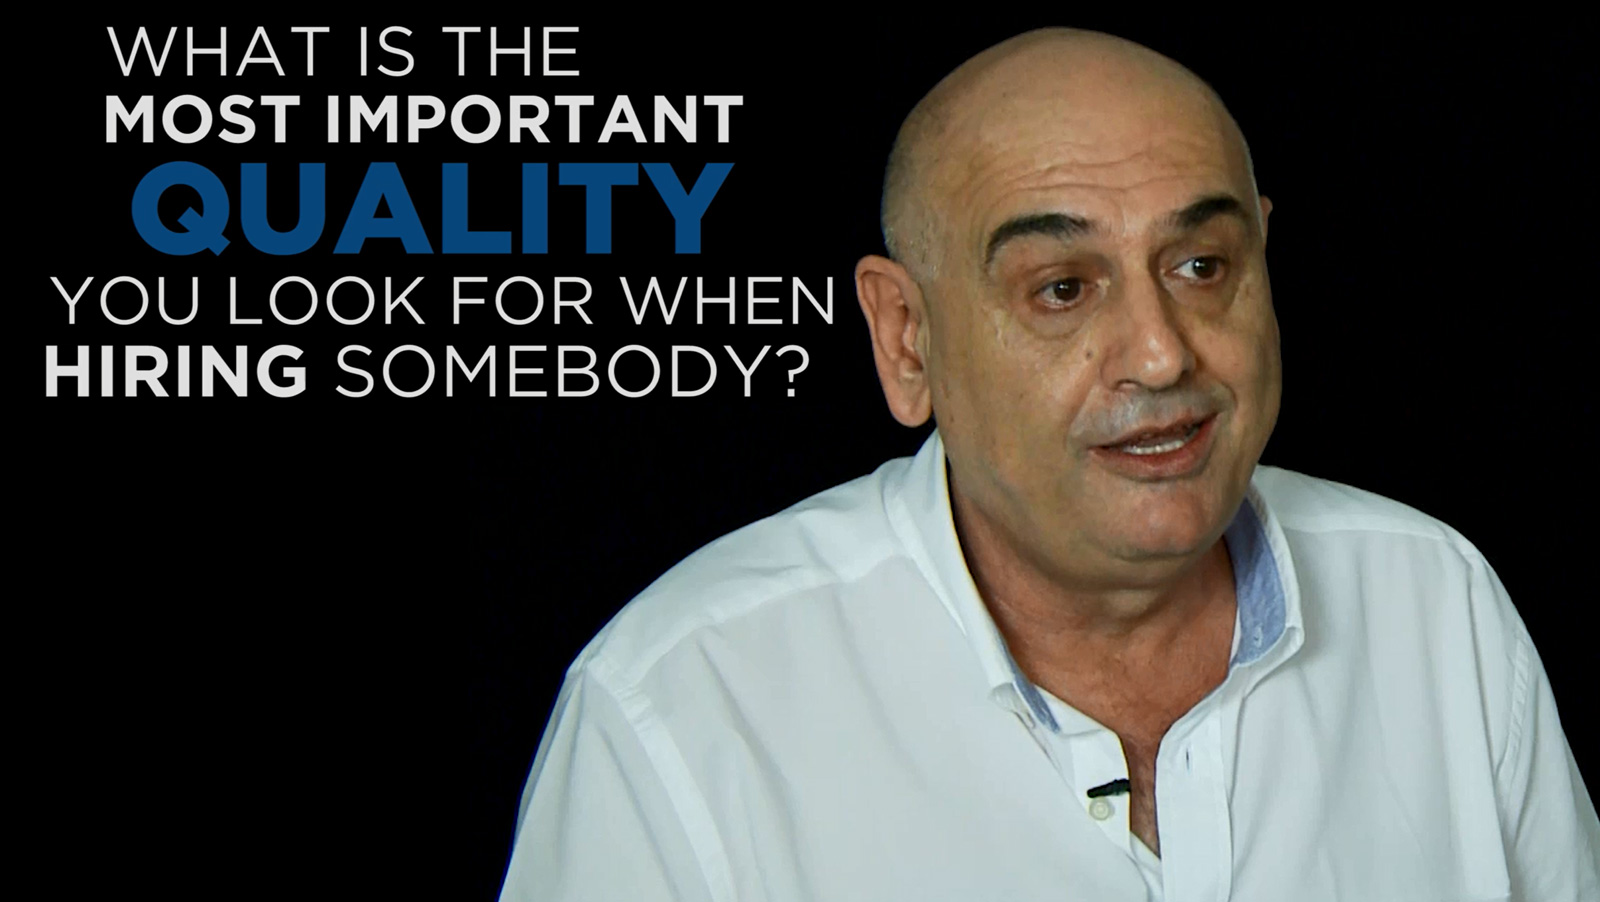 What Two or Three Things Are Most Important to You in Your Job?